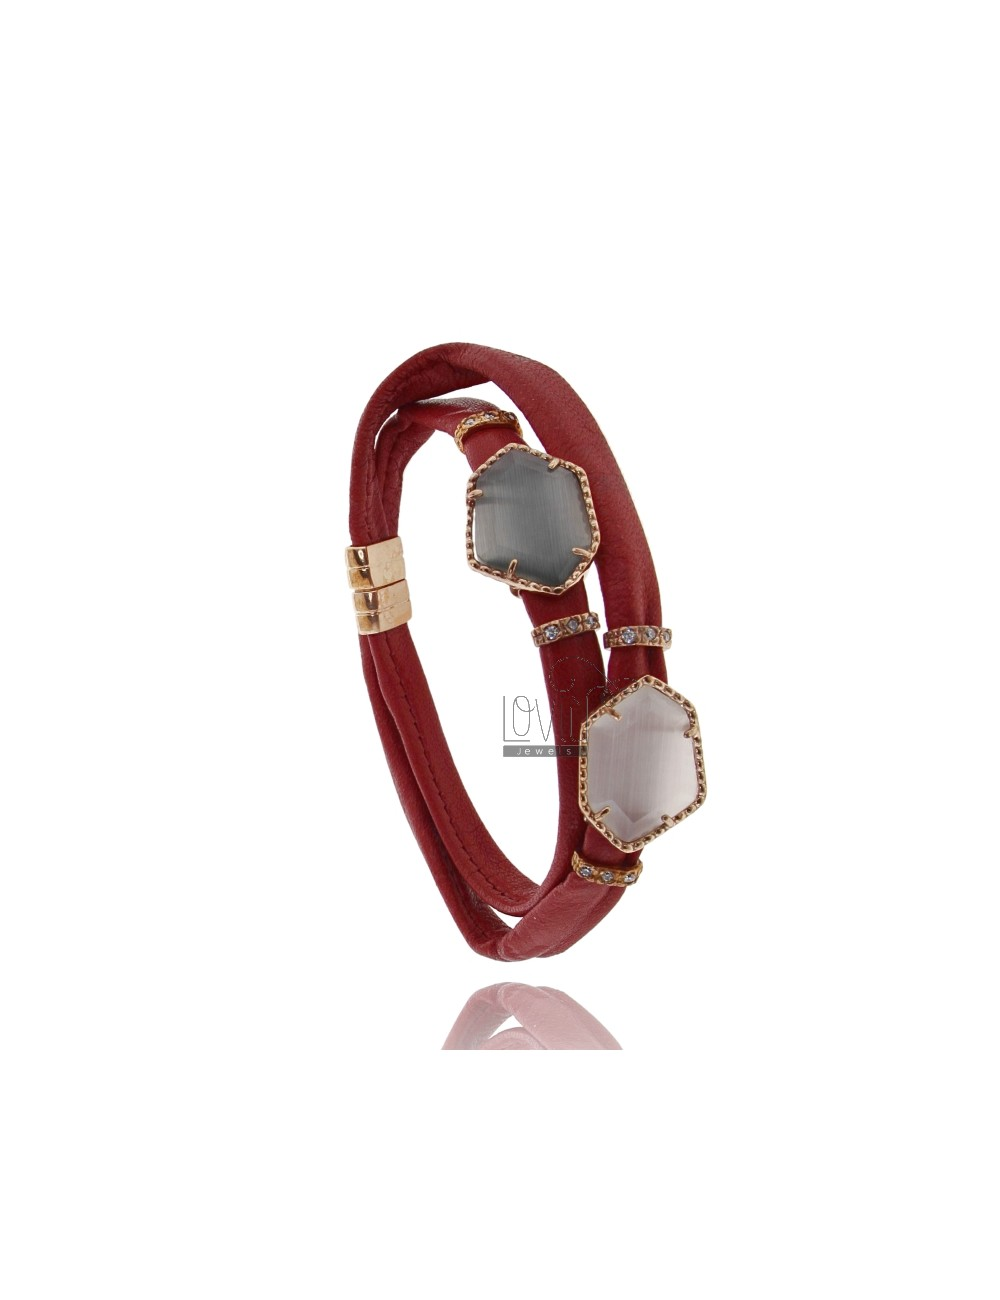 DOUBLE BRACELET AROUND LEATHER BORDEAUX, CENTRAL WITH STONES HYDROTHERMAL SASSO IRREGULAR ZIRCONIA AND MAGNETIC CLOSURE IN OLD R